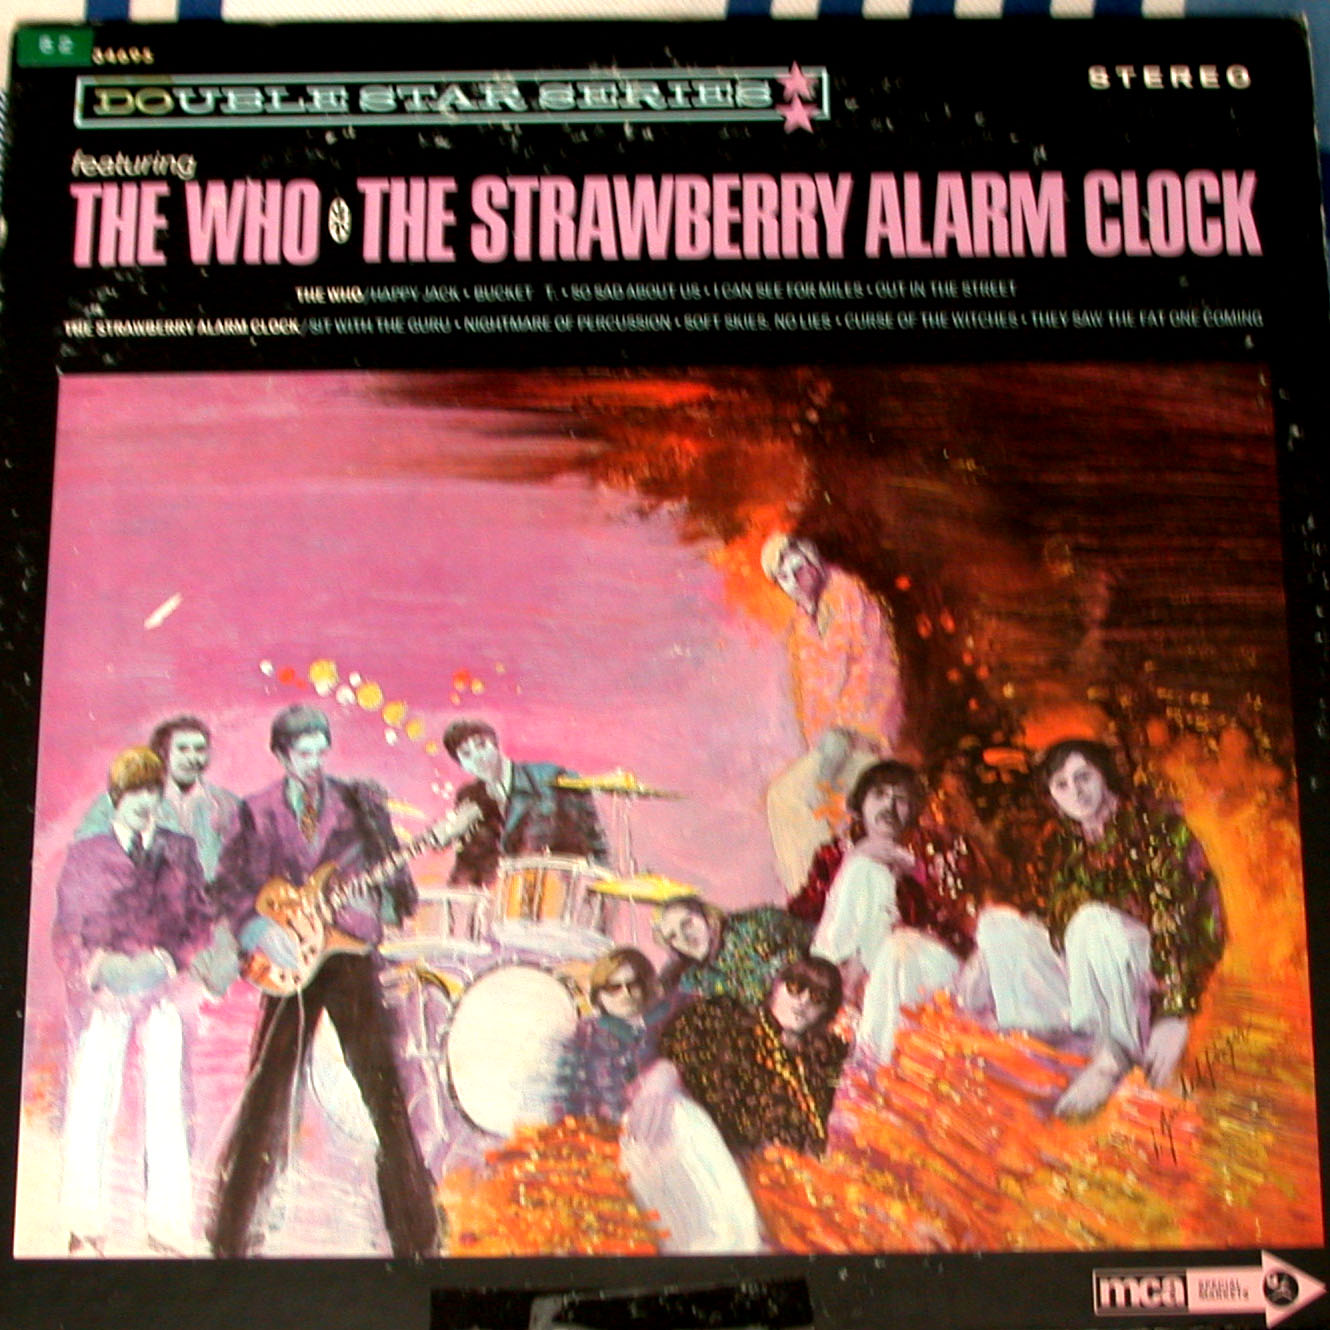 the who/ the strawberry alarm clock